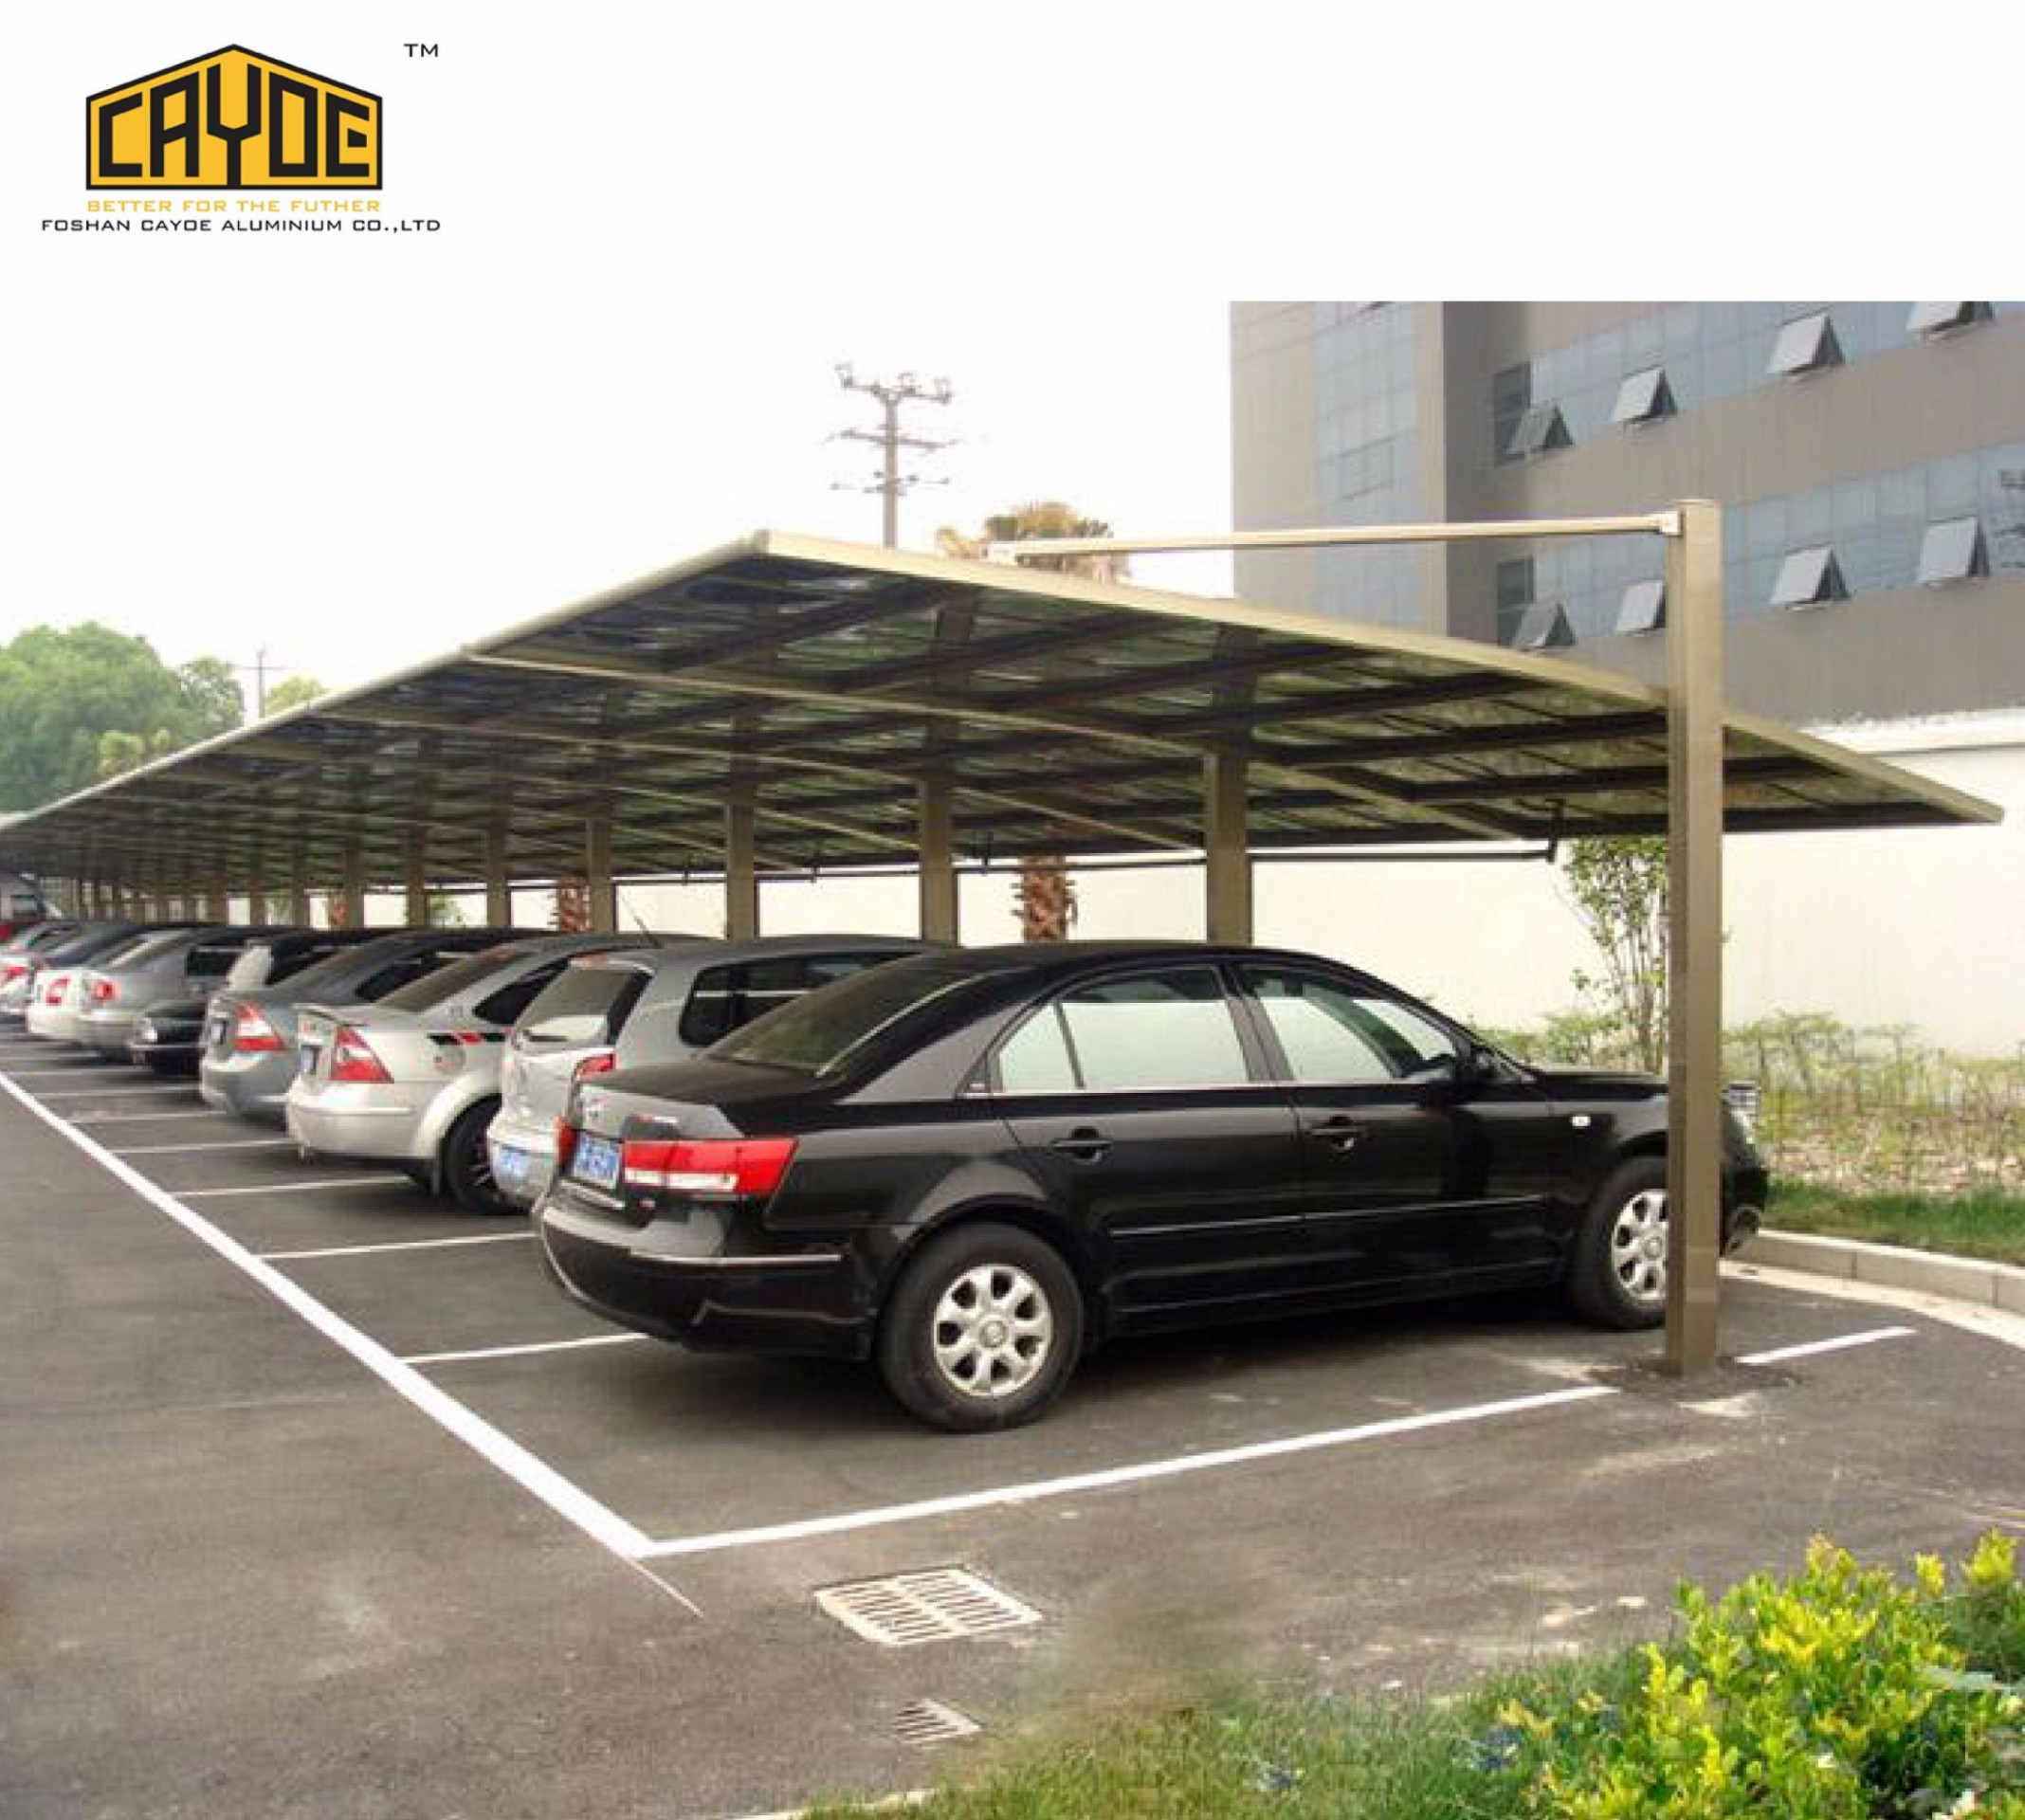 [Hot Item] Modern Design Snow Loading Polycarbonate Aluminum Carport Canopy Carport Canopy Snow